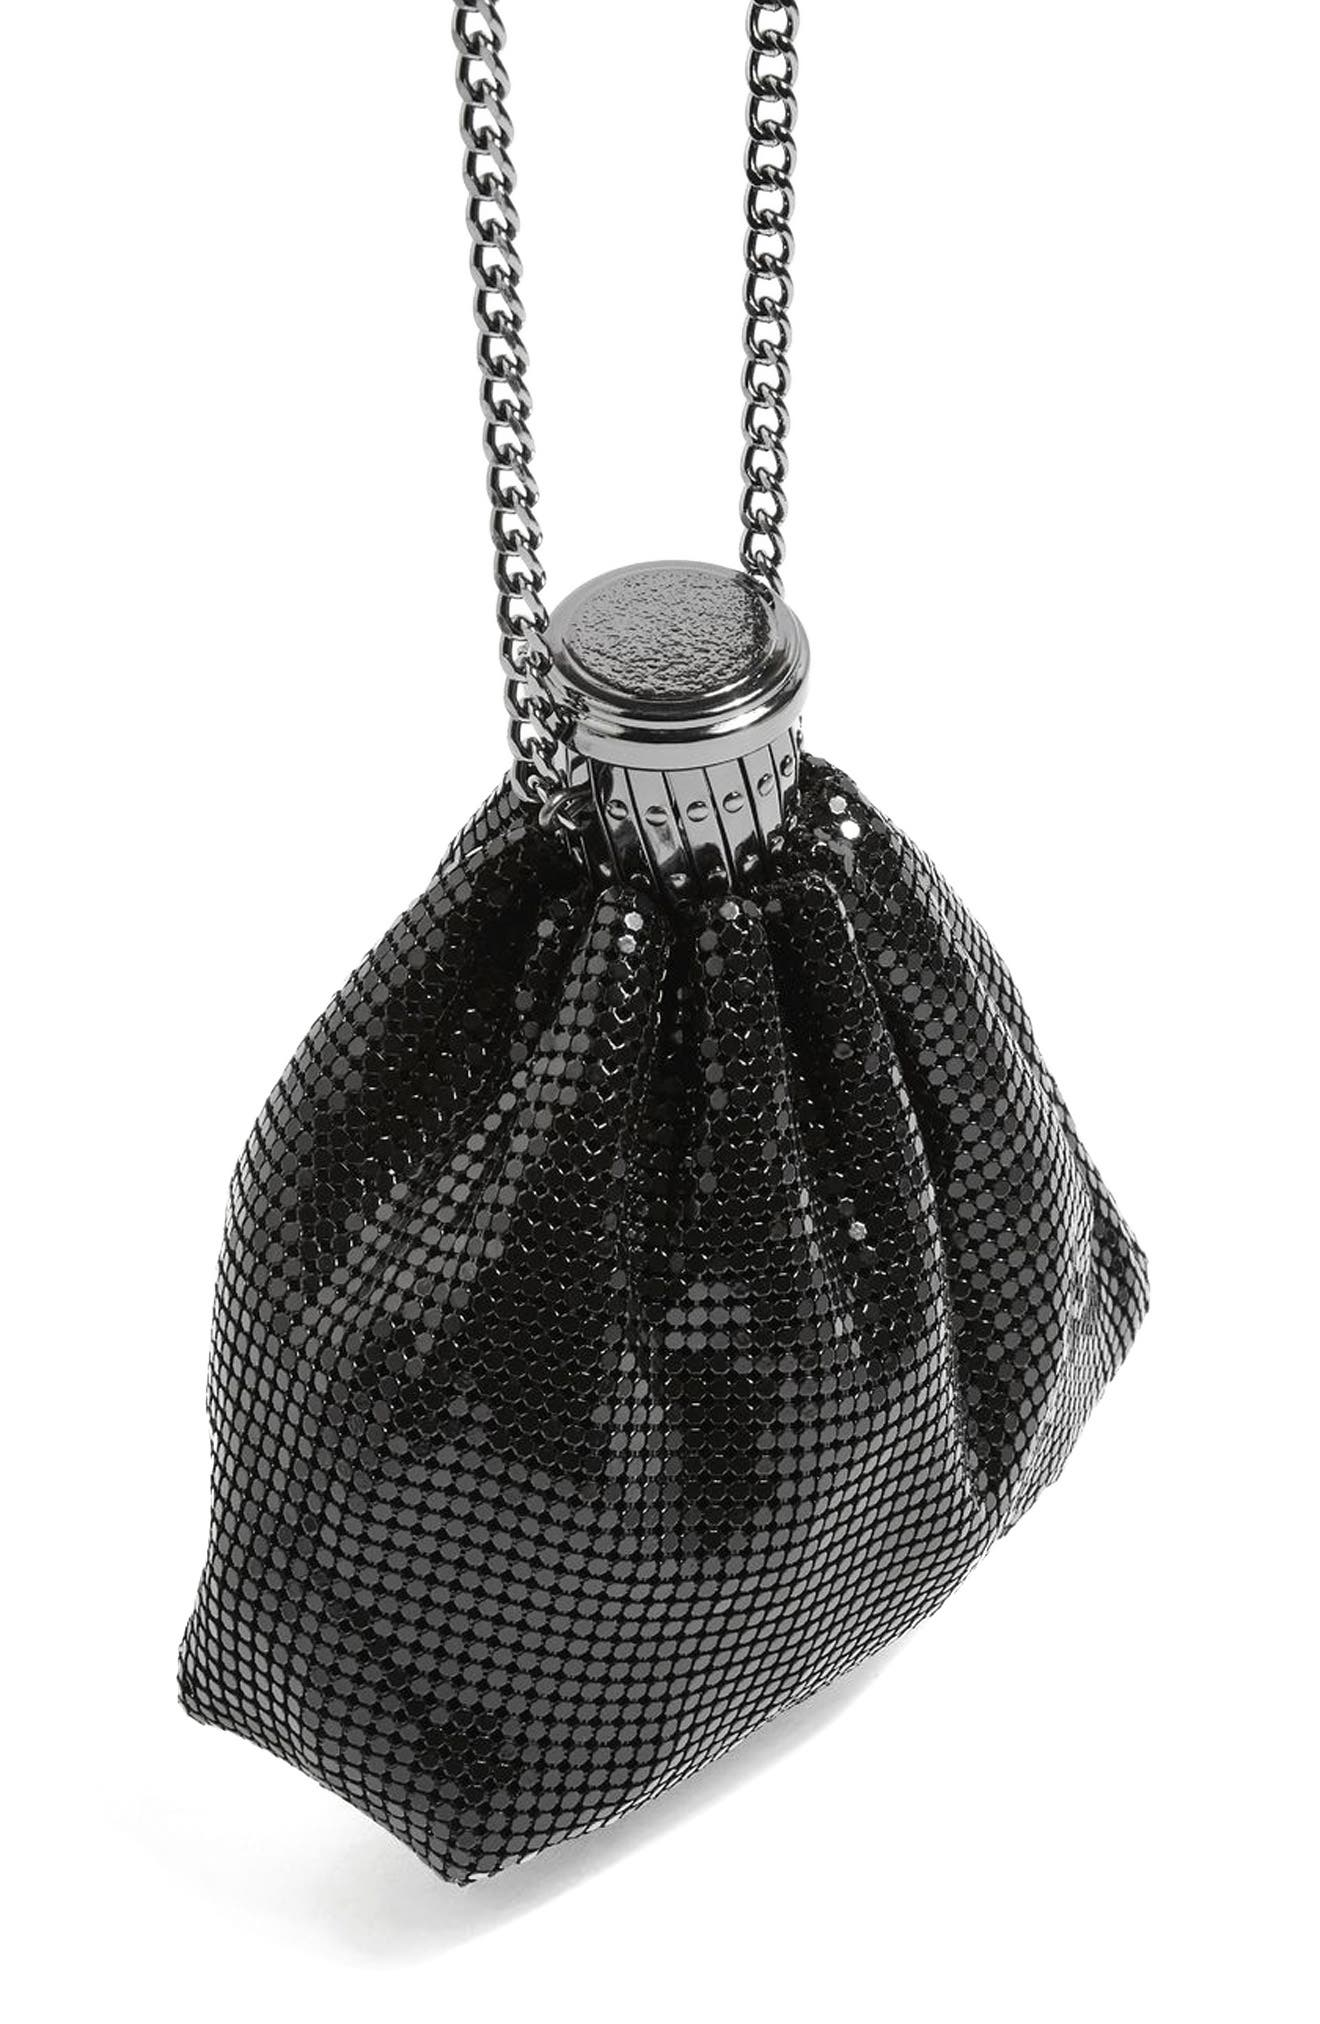 Chain Mail Pouch Crossbody Bag,                             Main thumbnail 1, color,                             Silver